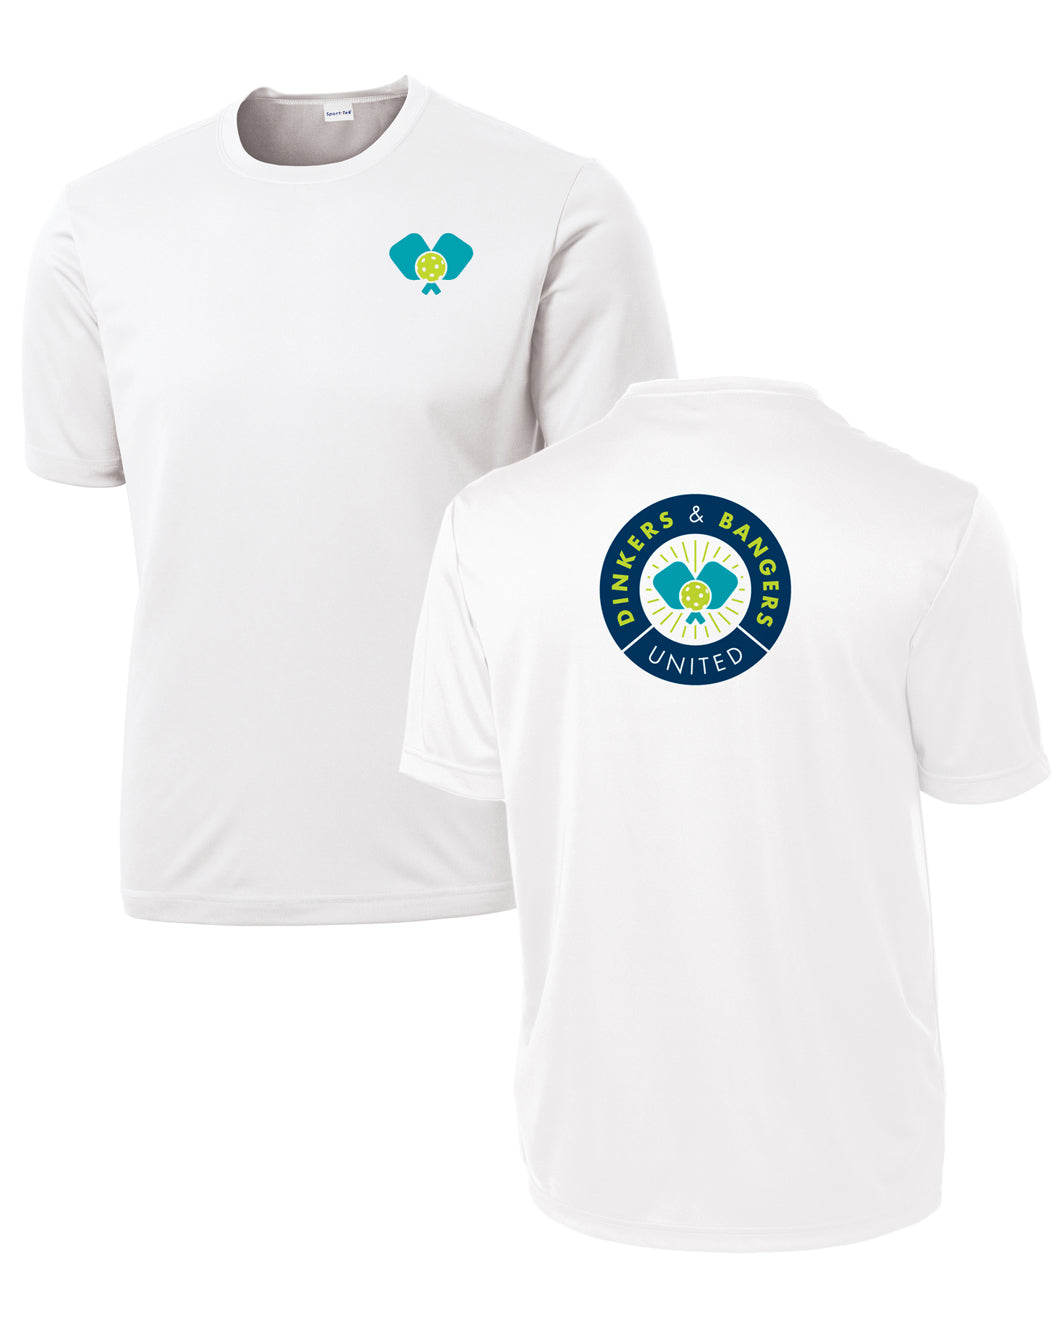 Dinkers & Bangers United - Performance Pickleball Tee - Two sided